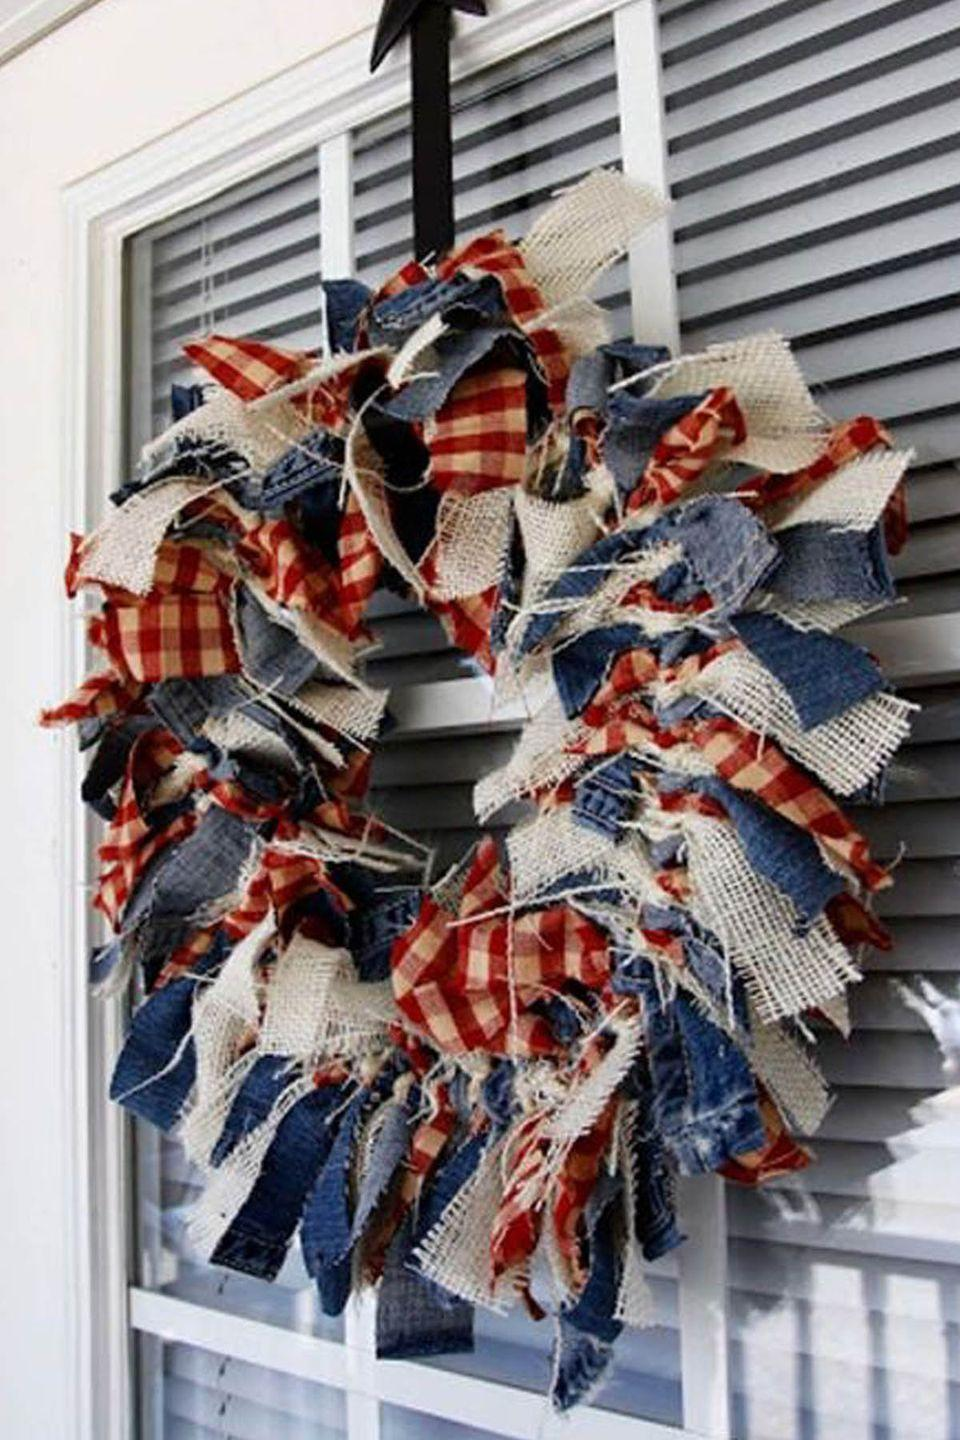 """<p>Upcycle an old pair of jeans, then add strips of burlap and gingham, to make this shabby-chic wreath. </p><p><strong>Get the tutorial at <a href=""""http://notjustbrides.blogspot.com/2012/06/independence-day-craft-4th-of-july-rag.html"""" rel=""""nofollow noopener"""" target=""""_blank"""" data-ylk=""""slk:Beyond the Aisle"""" class=""""link rapid-noclick-resp"""">Beyond the Aisle</a>. </strong></p><p><strong><a class=""""link rapid-noclick-resp"""" href=""""https://www.amazon.com/Wired-Burlap-Ribbon-American-Stars/dp/B071S2H25P/ref=sr_1_2?tag=syn-yahoo-20&ascsubtag=%5Bartid%7C10050.g.4464%5Bsrc%7Cyahoo-us"""" rel=""""nofollow noopener"""" target=""""_blank"""" data-ylk=""""slk:SHOP PATRIOTIC BURLAP RIBBON"""">SHOP PATRIOTIC BURLAP RIBBON </a></strong></p>"""